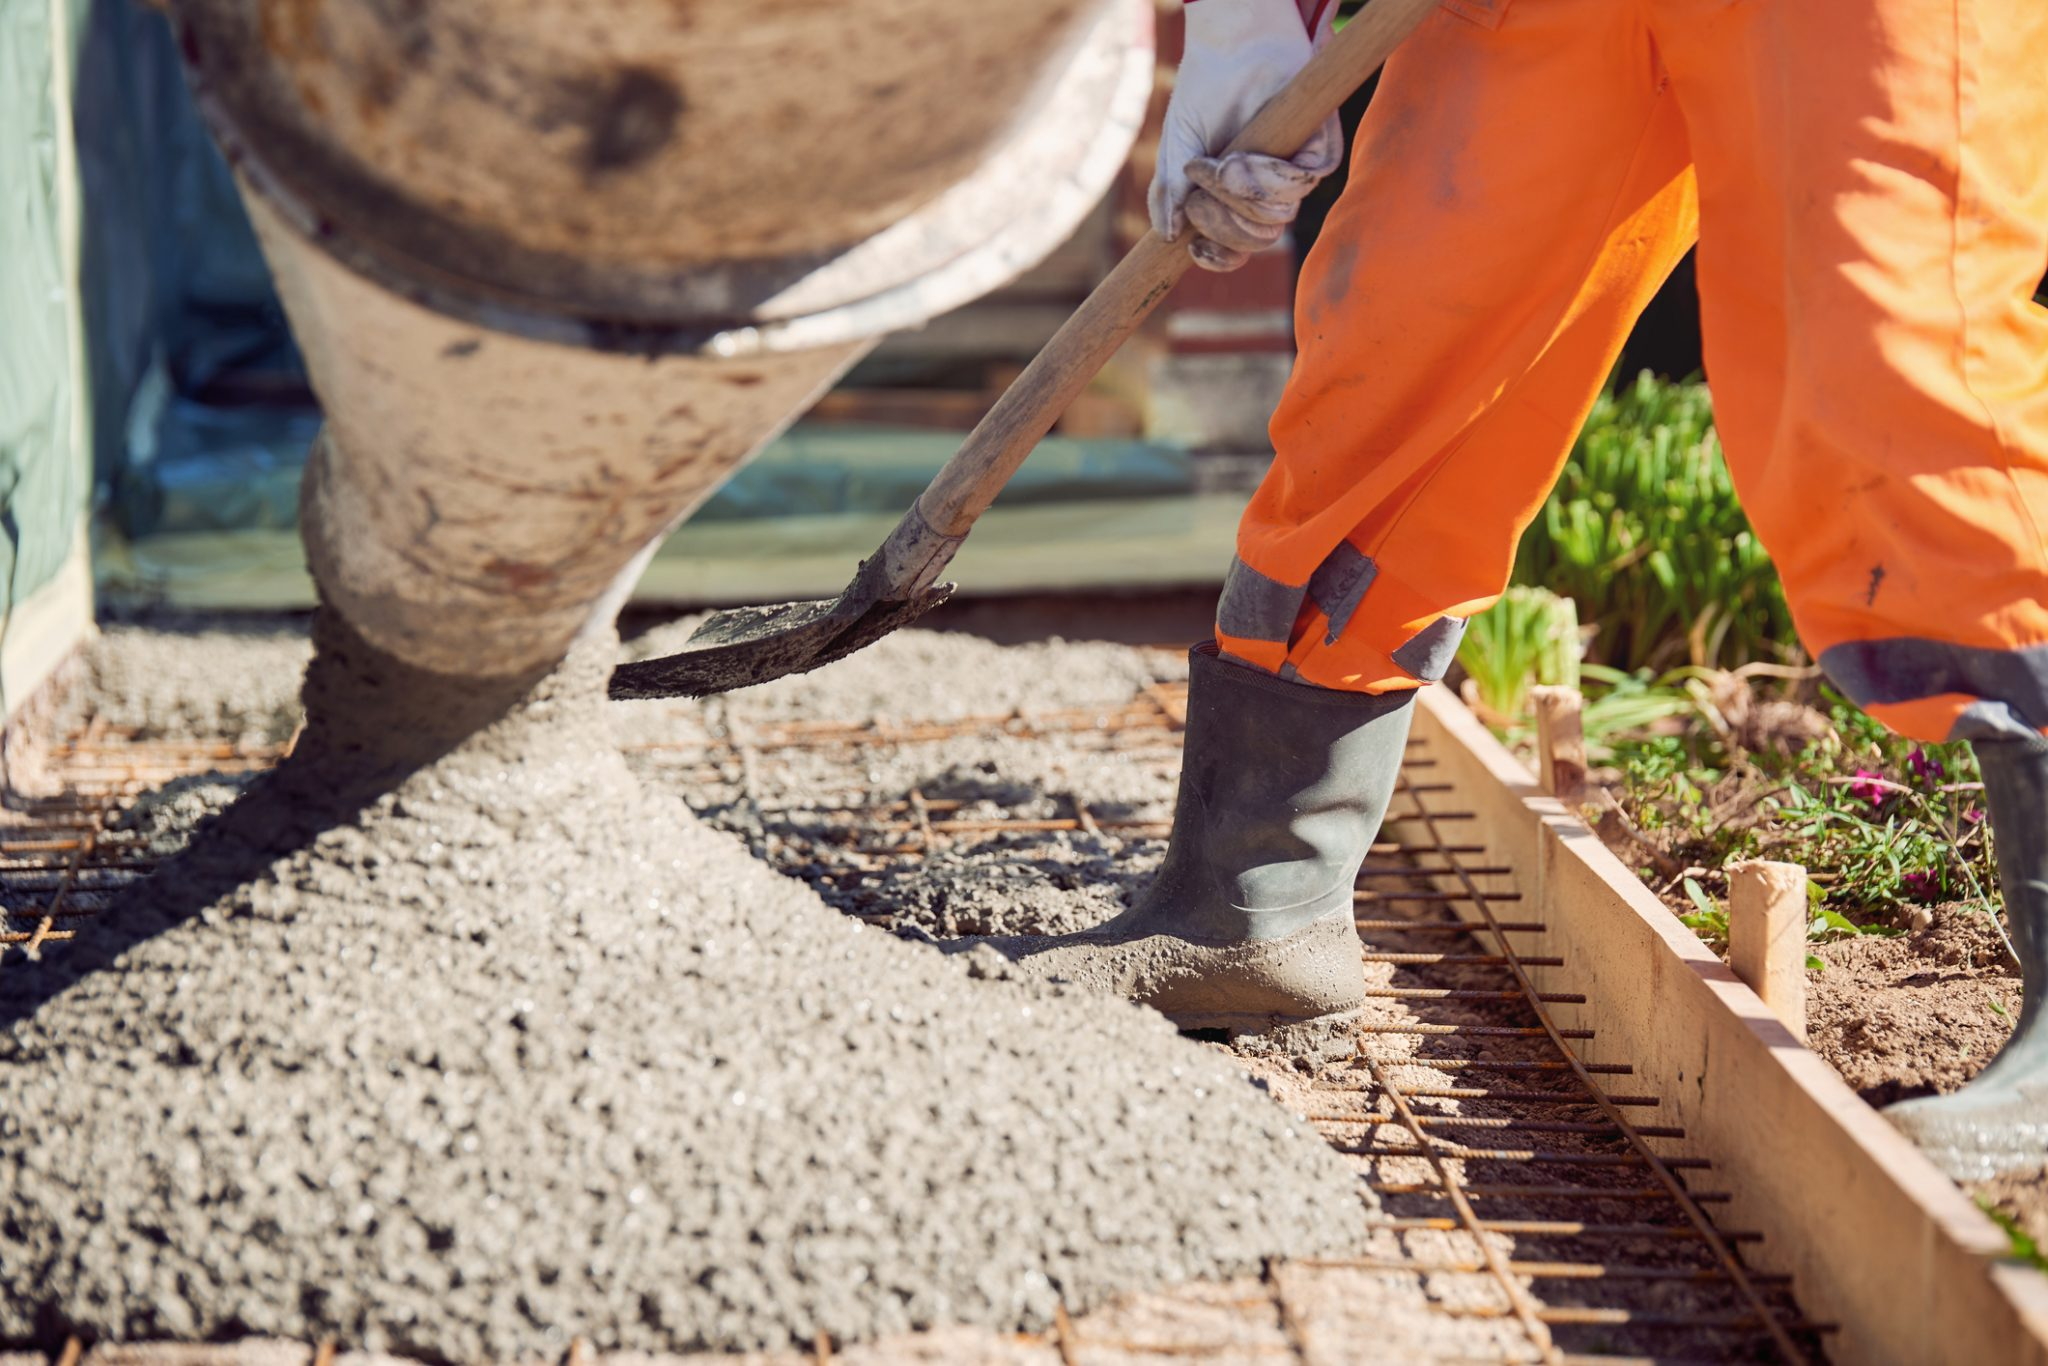 why is concrete a good construction material?